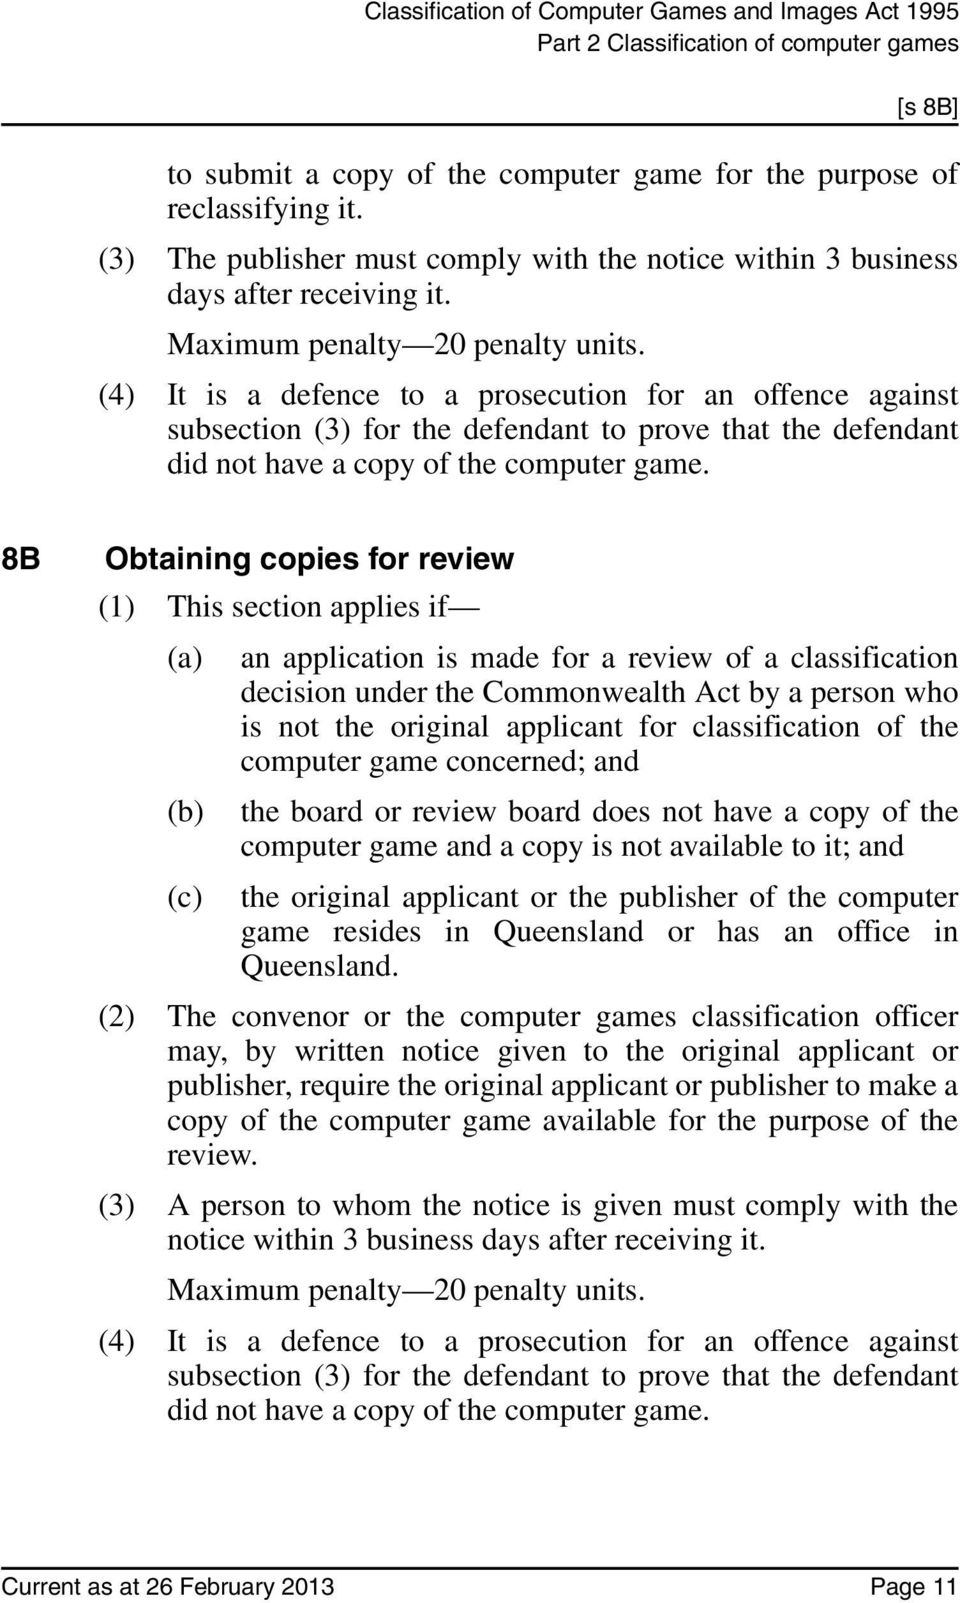 (4) It is a defence to a prosecution for an offence against subsection (3) for the defendant to prove that the defendant did not have a copy of the computer game.